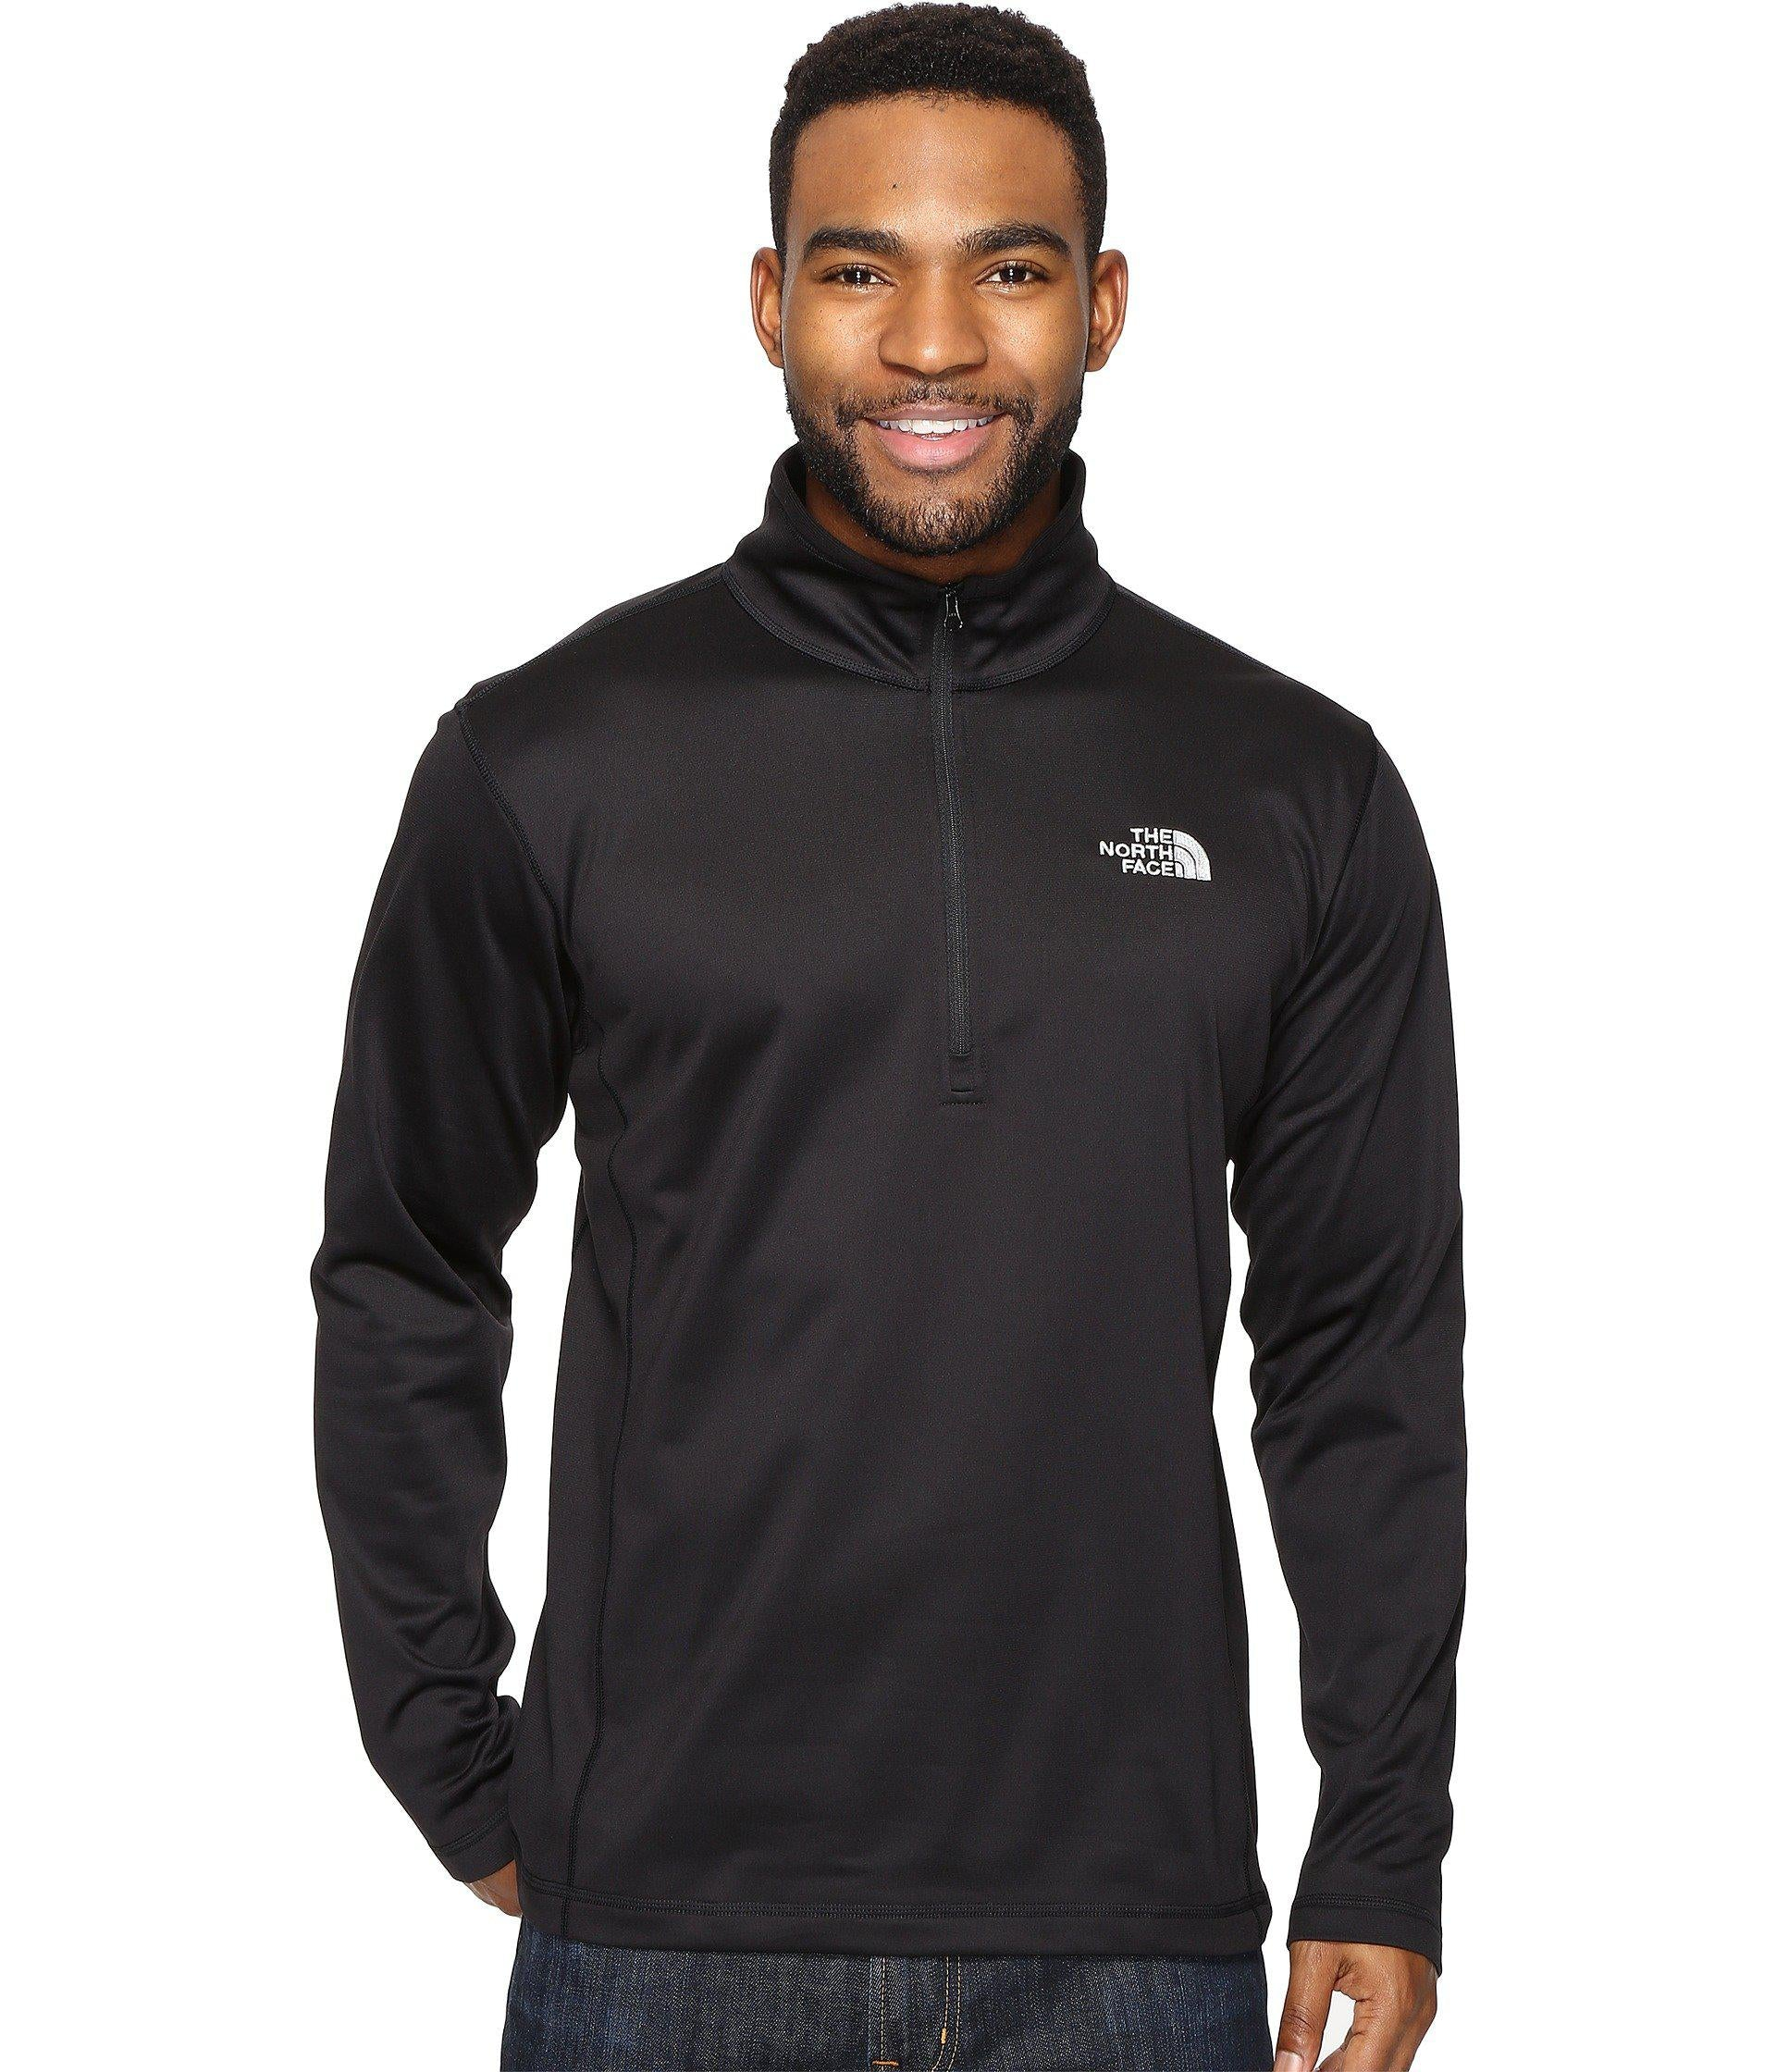 The North Face Tech Glacier Quarter Zip (Men's) - Find Your Feet Australia Hobart Launceston Tasmania